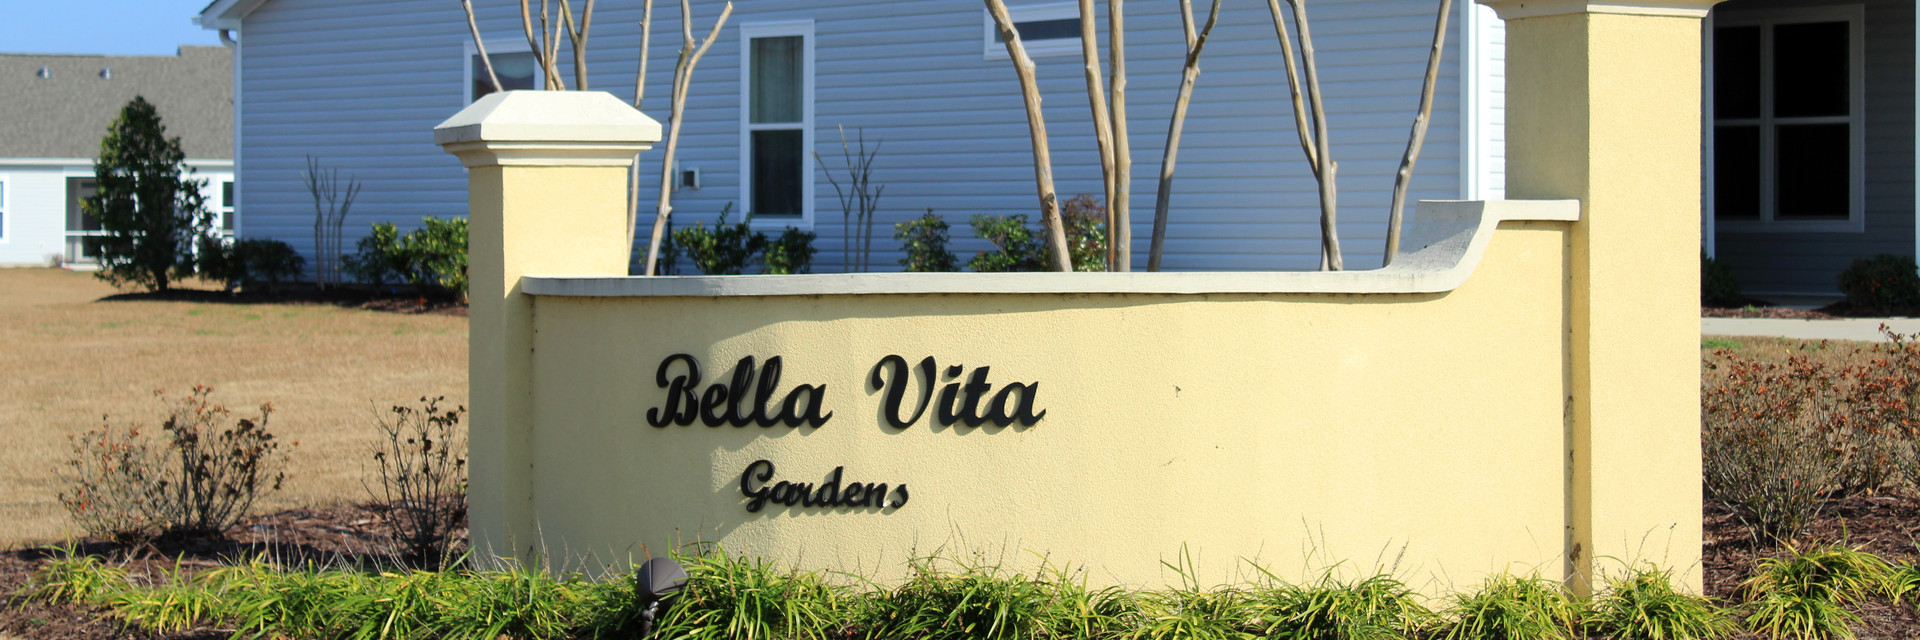 Bella Vita Garden Homes New Homes in Myrtle Beach SC